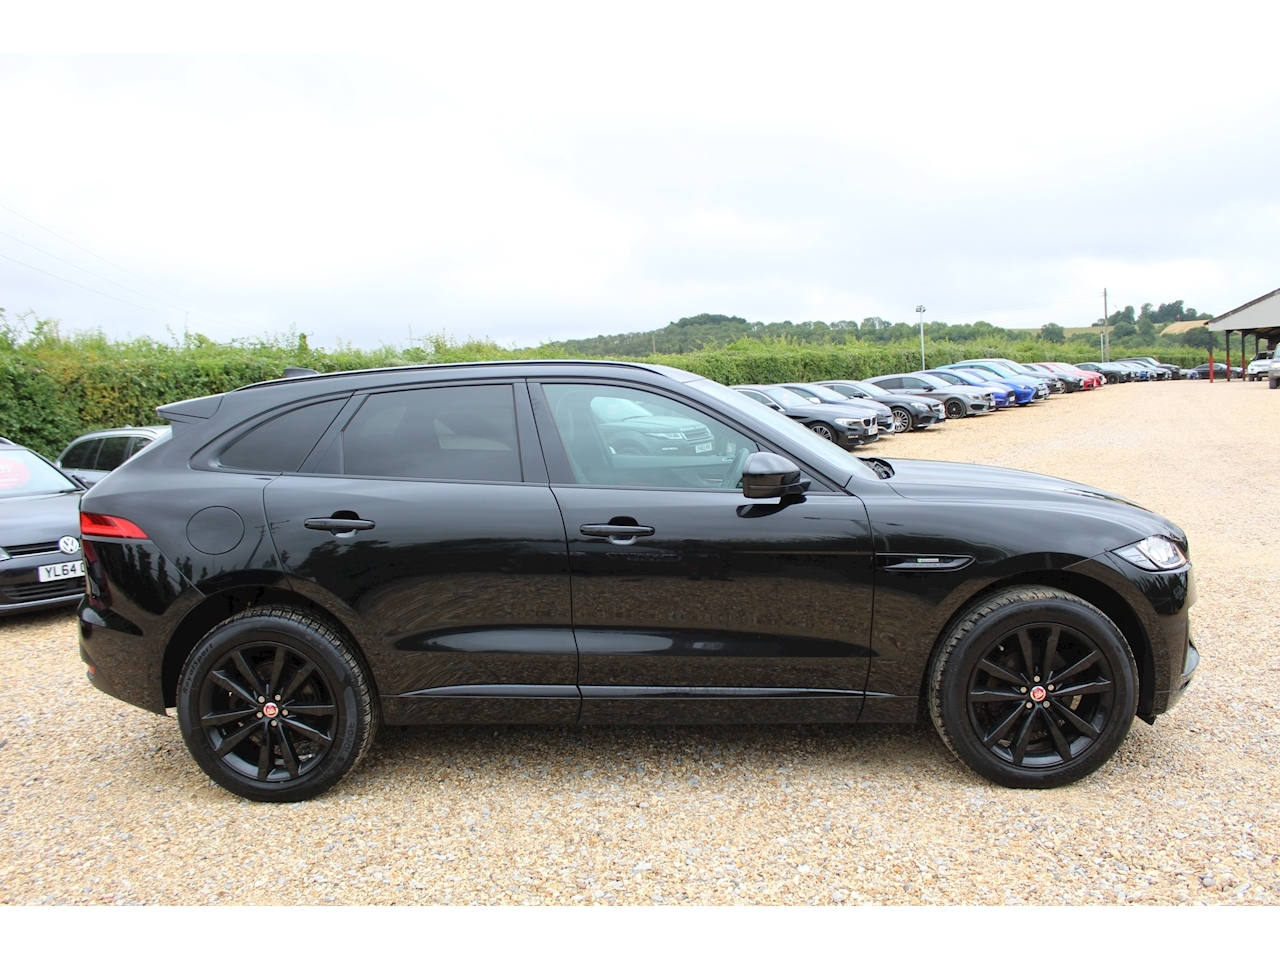 Jaguar F-Pace R-Sport Awd Estate 2.0 Automatic Diesel